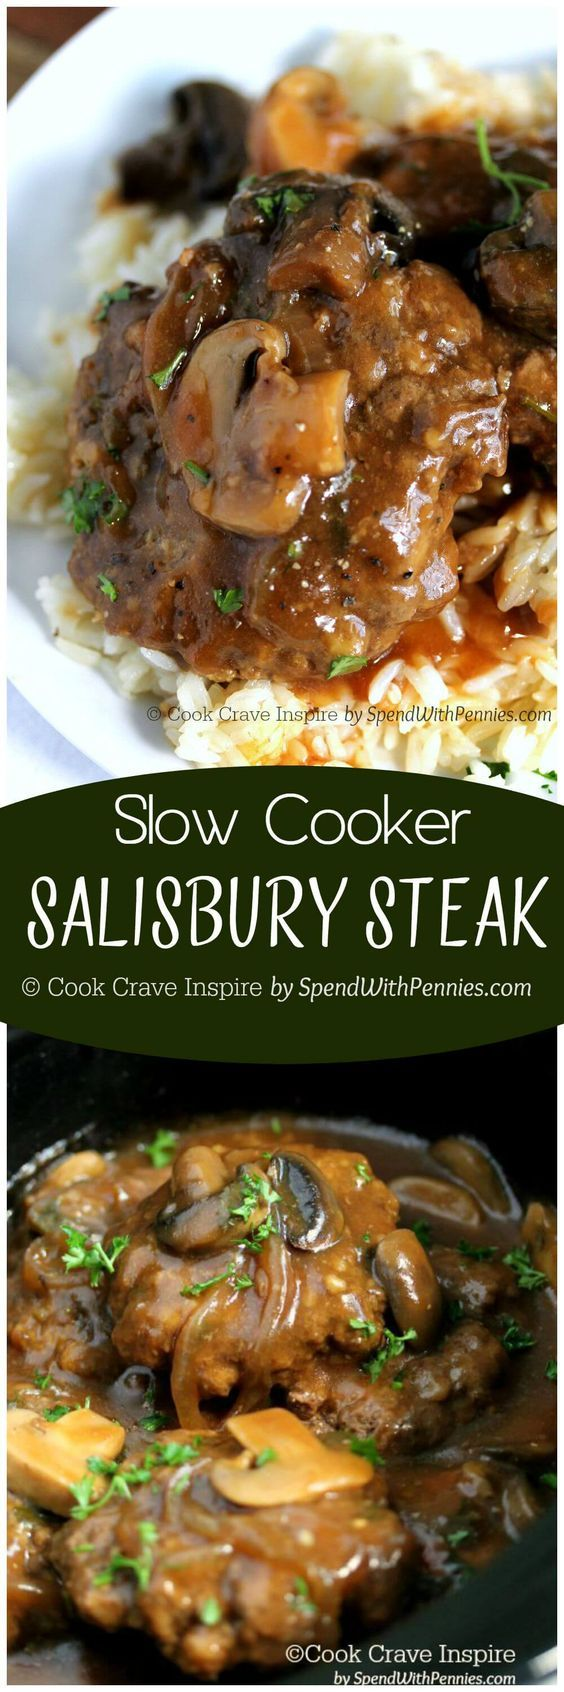 Slow Cooker Salisbury Steak Recipe plus 49 of the most pinned crock pot recipes